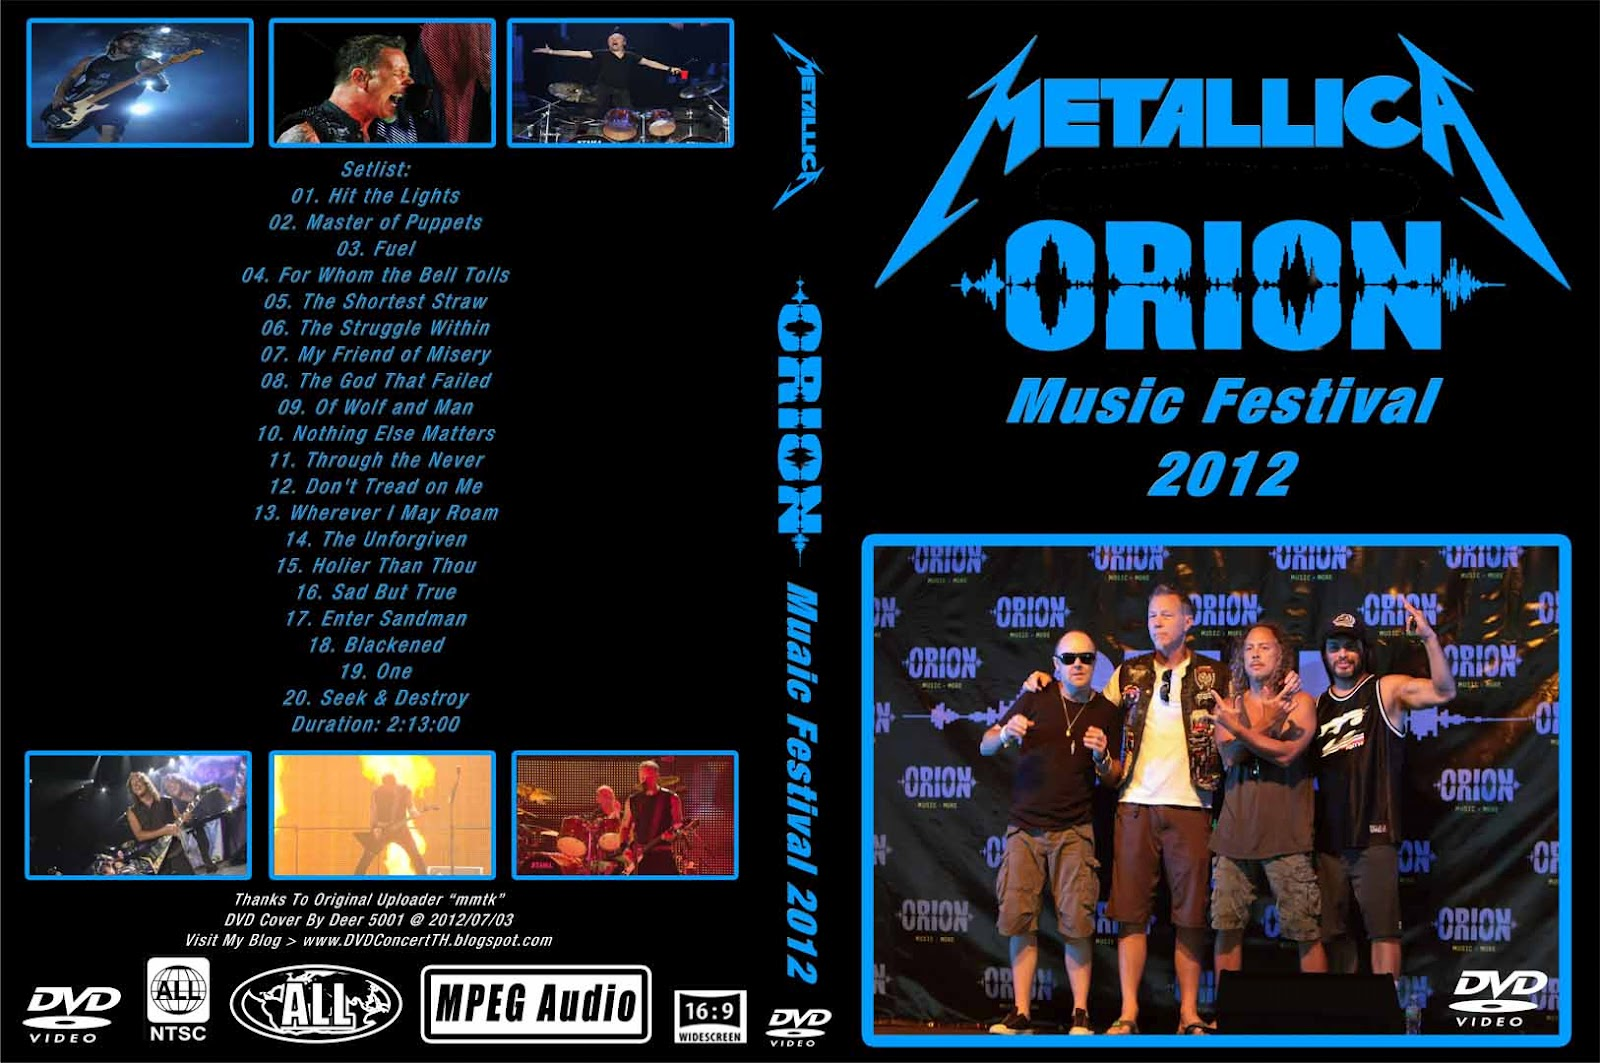 http://3.bp.blogspot.com/-A4GkOtz2m00/T_QYICBCawI/AAAAAAAAGpQ/lF1fc4RfIgQ/s1600/DVD+Cover+Metallica+-+Orion+Music+Festival+2012+-+The+Black+Album+.jpg